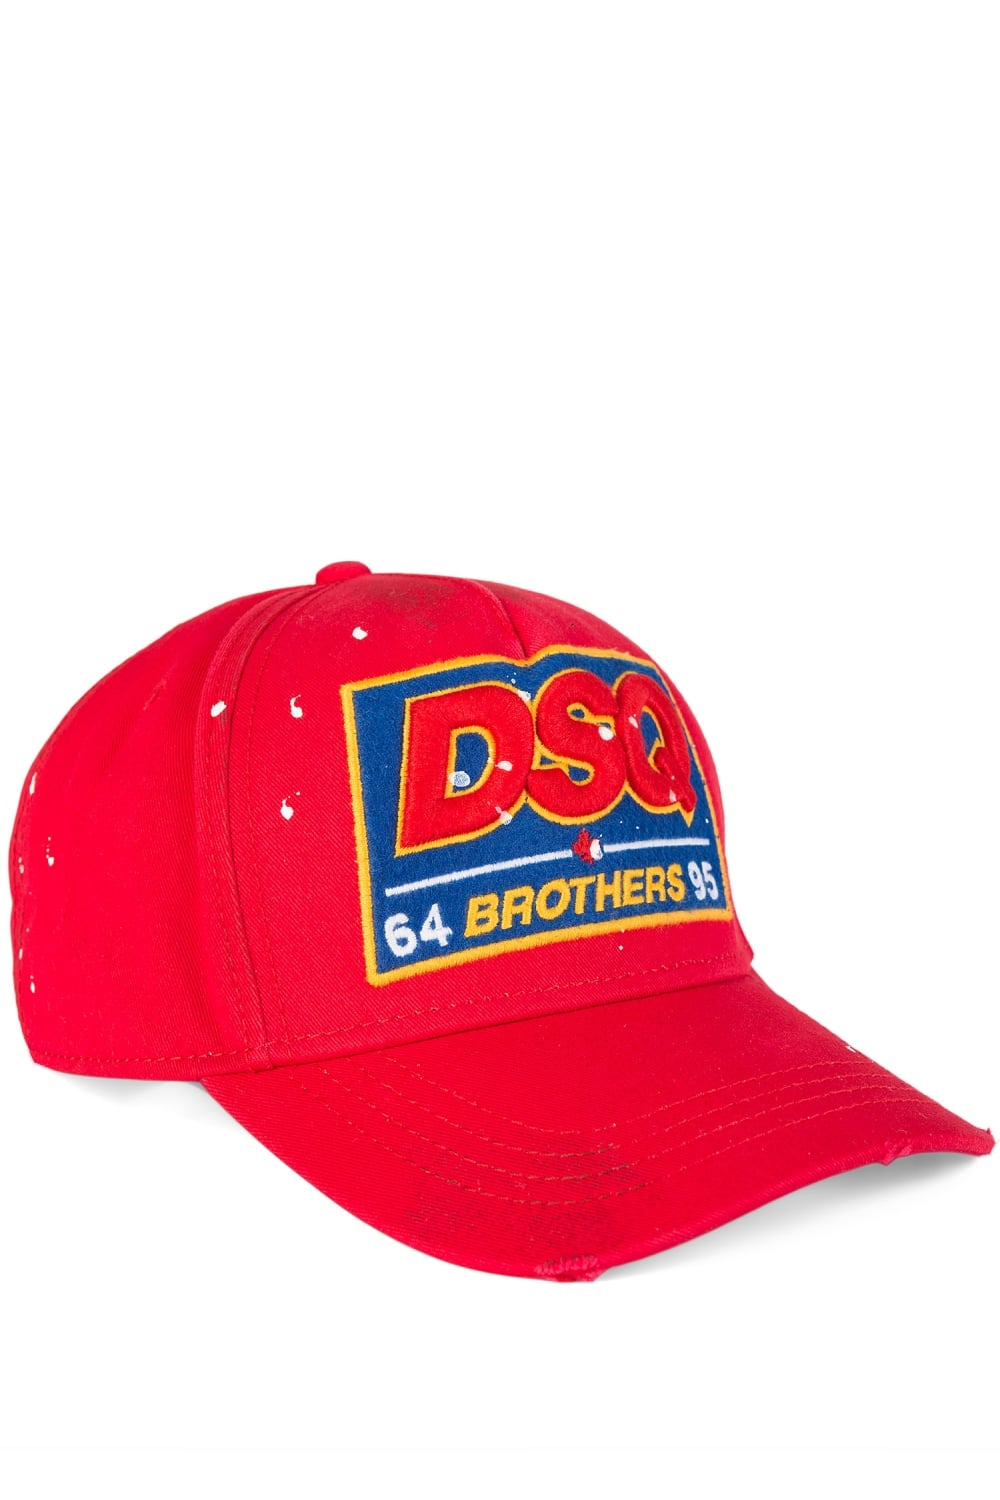 d44aa7d4d Dsquared Brothers Baseball Cap Red